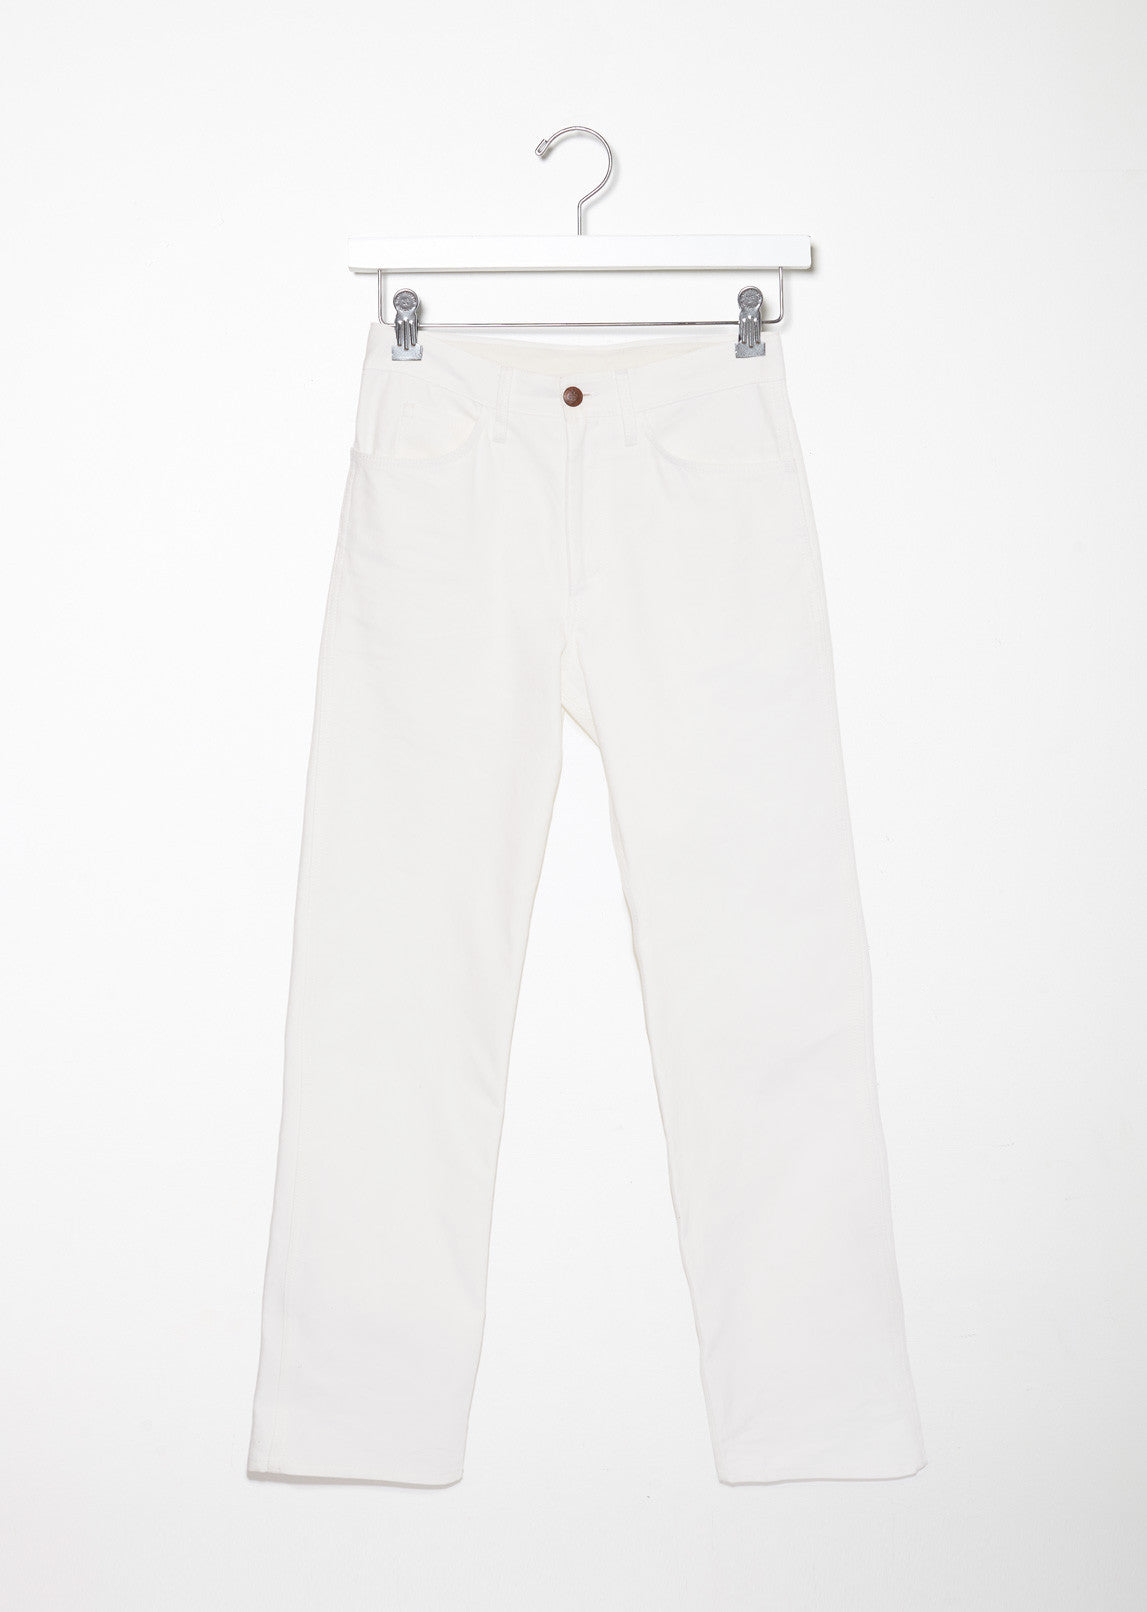 Cotton Canvas Pants